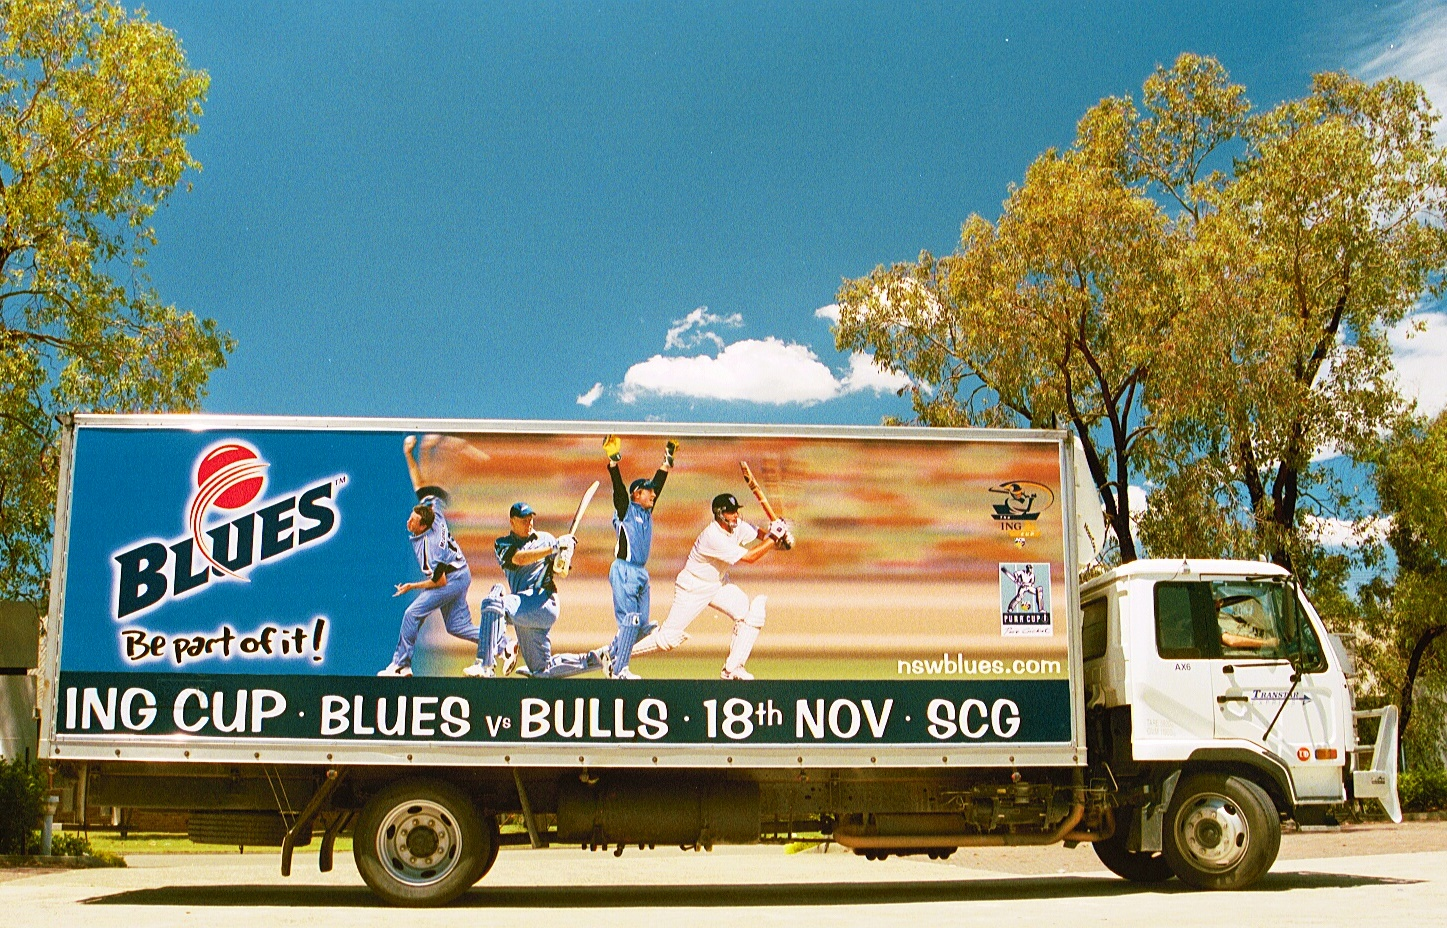 Truck advertising. NSW Blues TruckWrap at Silverwater. TruckSide, Pan, Cricket, ING Cup